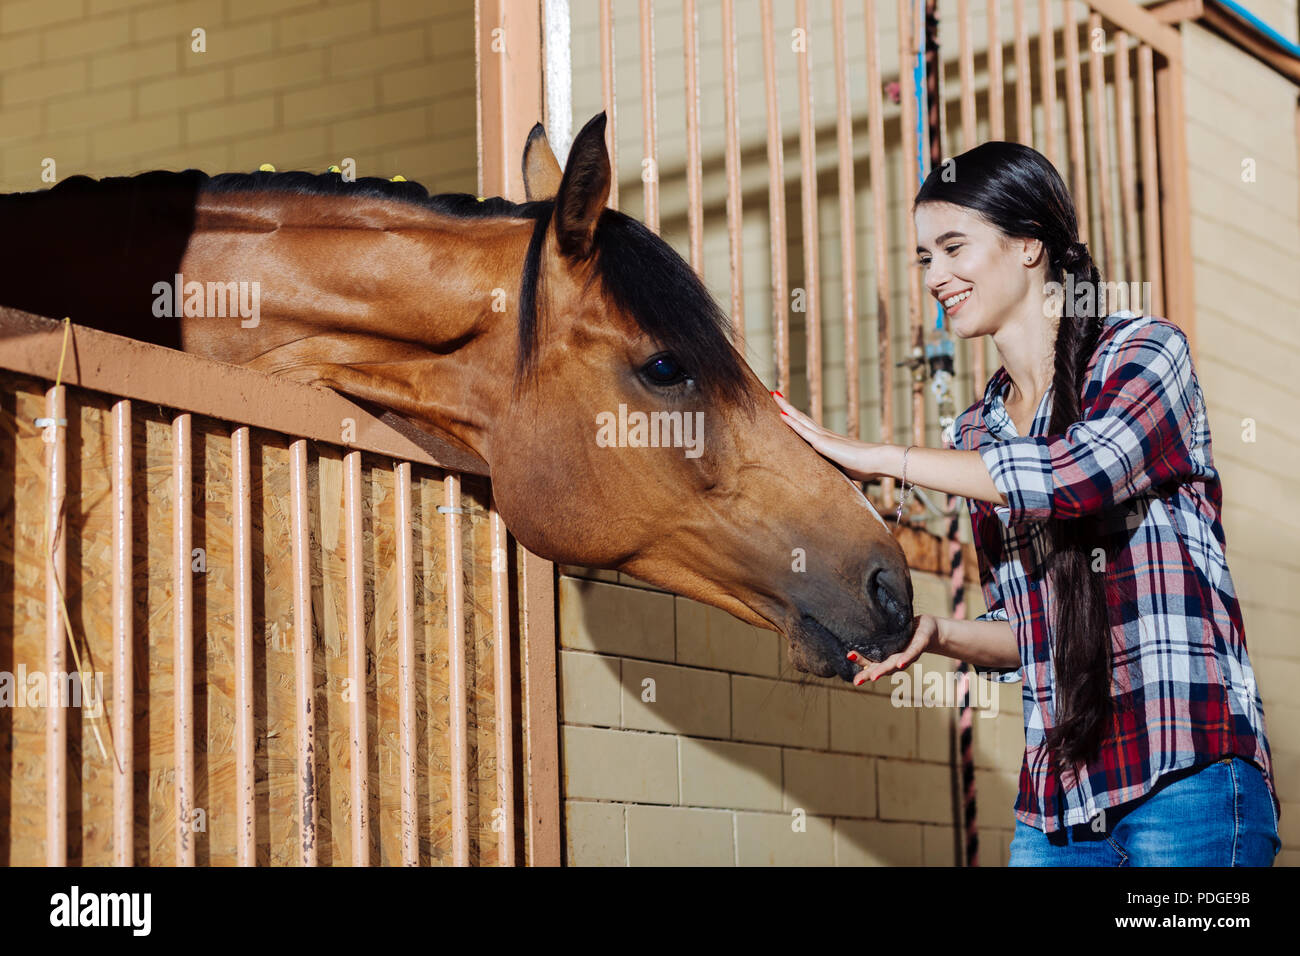 Young horsewoman standing in stable and petting dark horse - Stock Image